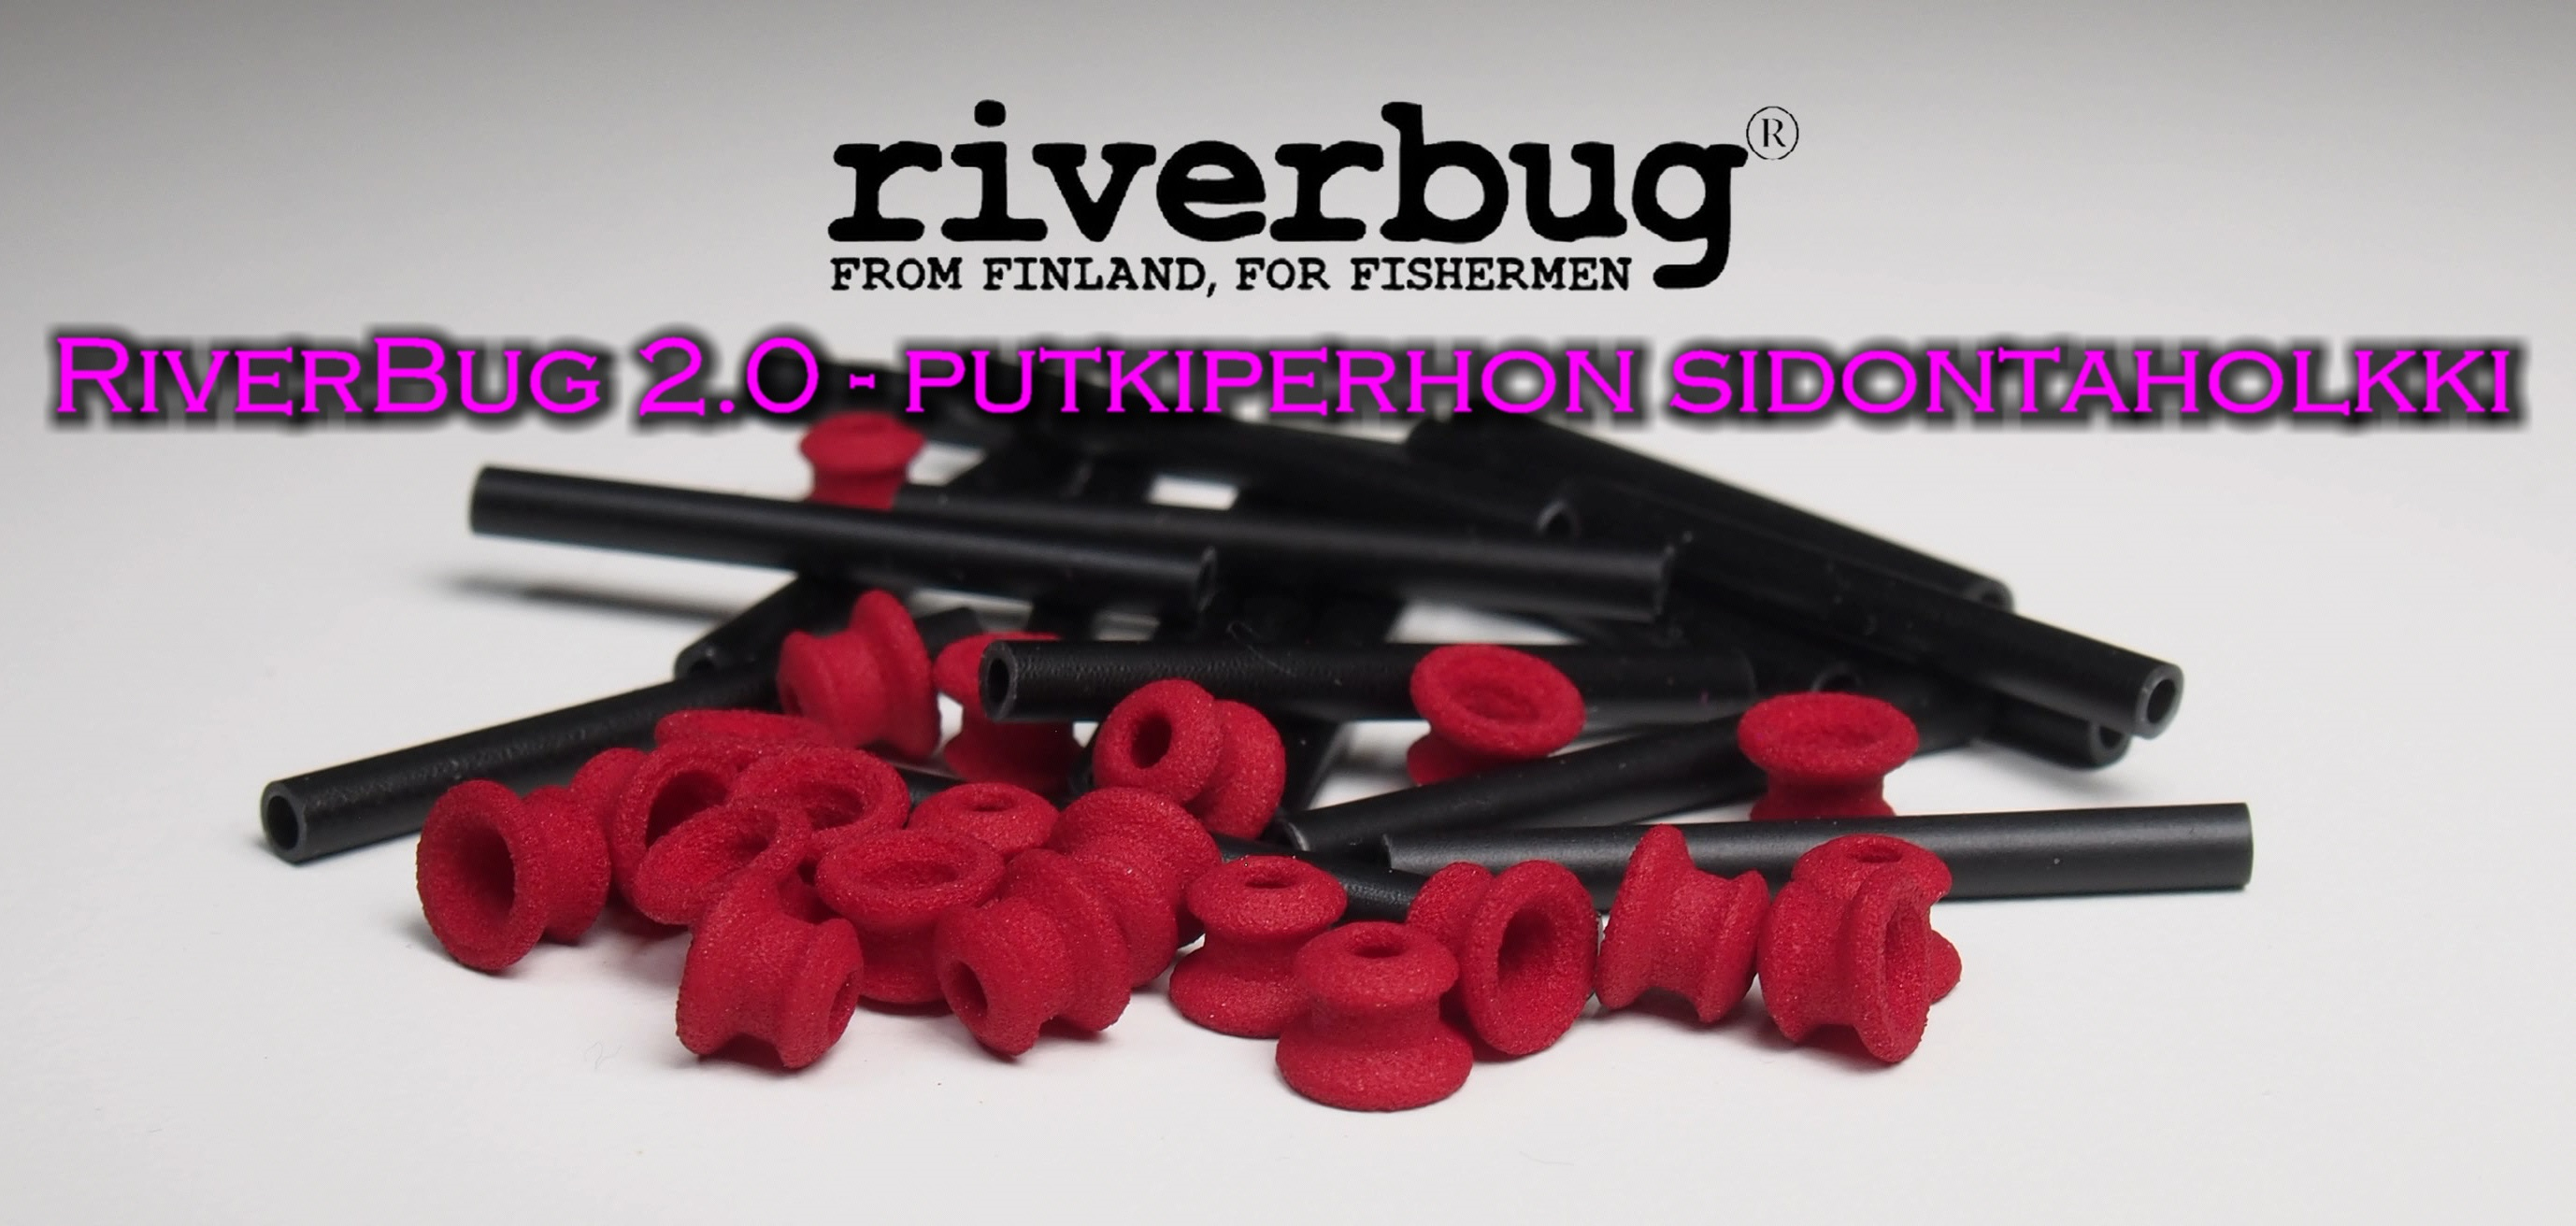 Tube Fly sleeve RiverBug 2.0 - Red. RiverBug 2.0 Putkiperho - Holkki.